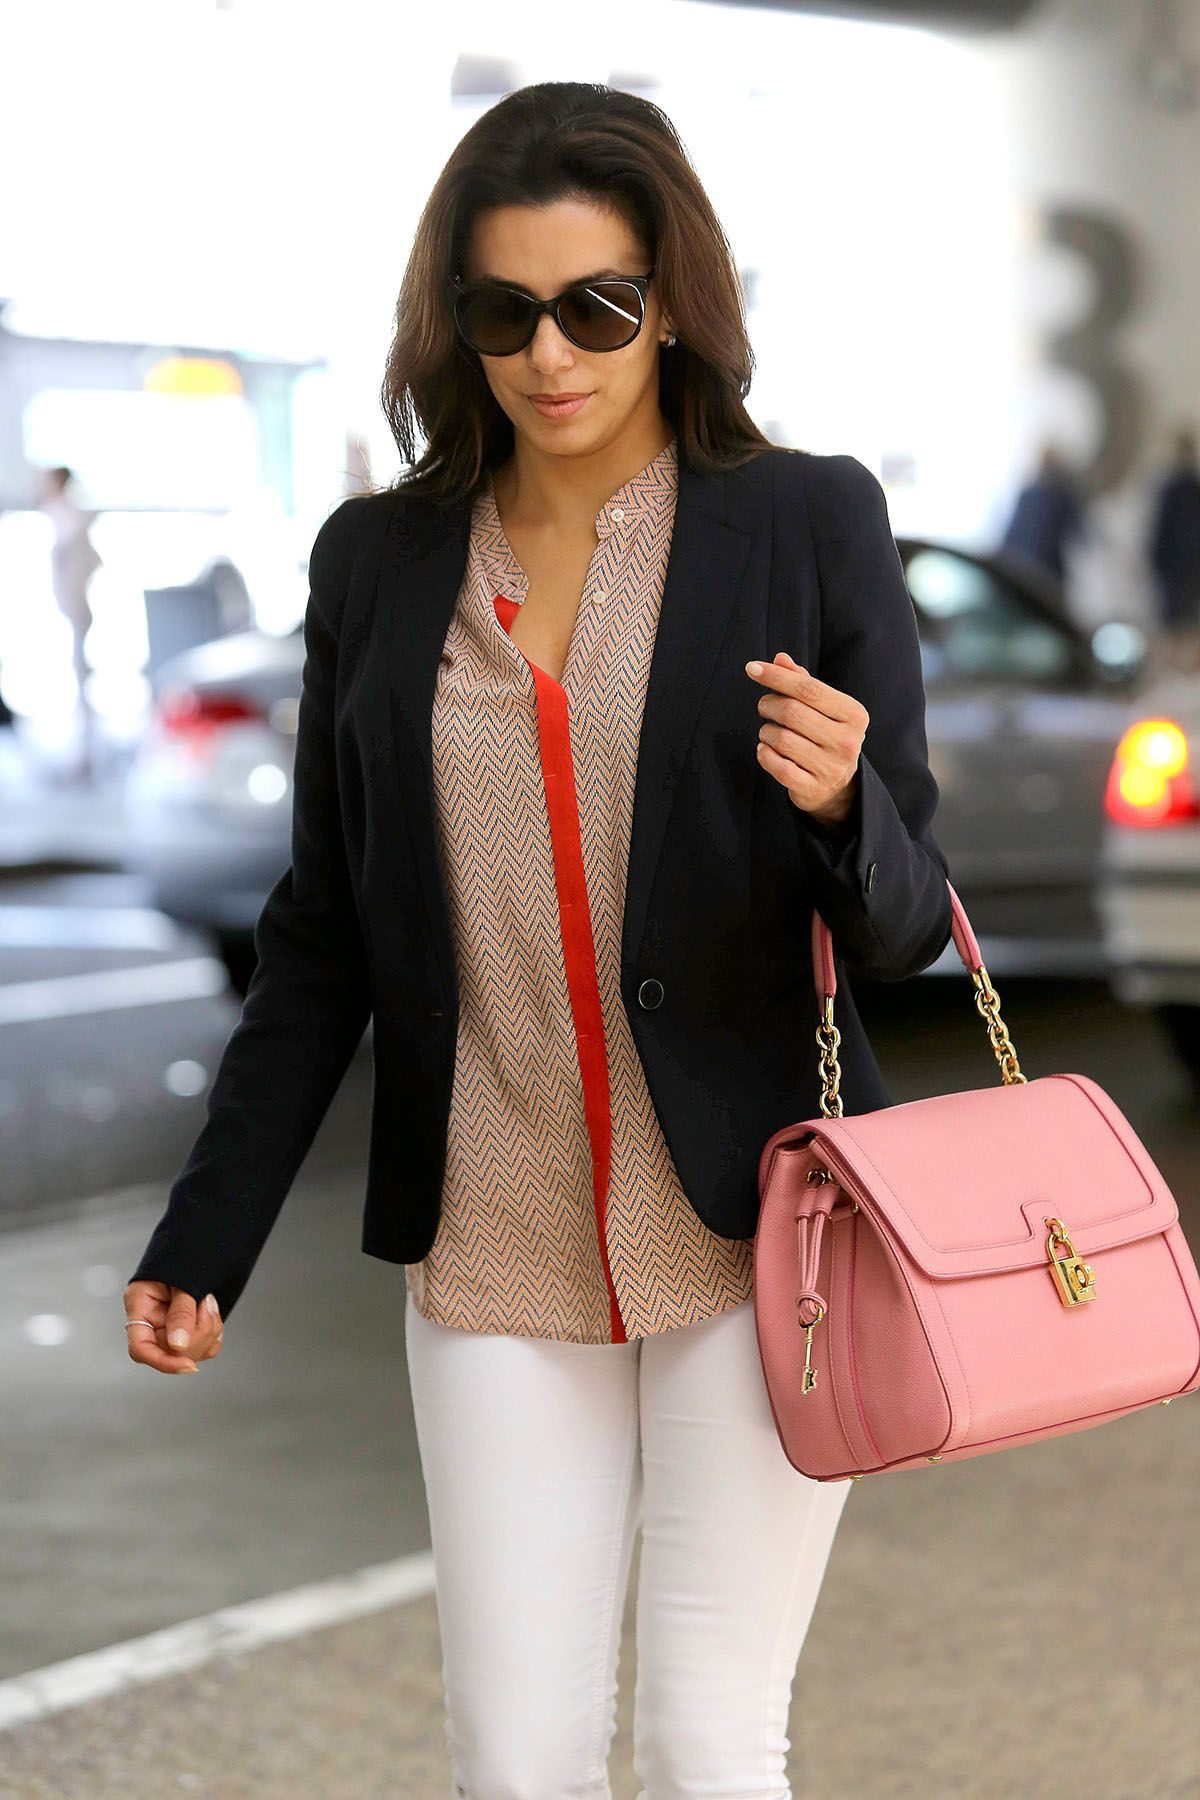 Style Watch Celebrity Streetstyle 19 Spring Street Style Eva Longoria And Street Styles